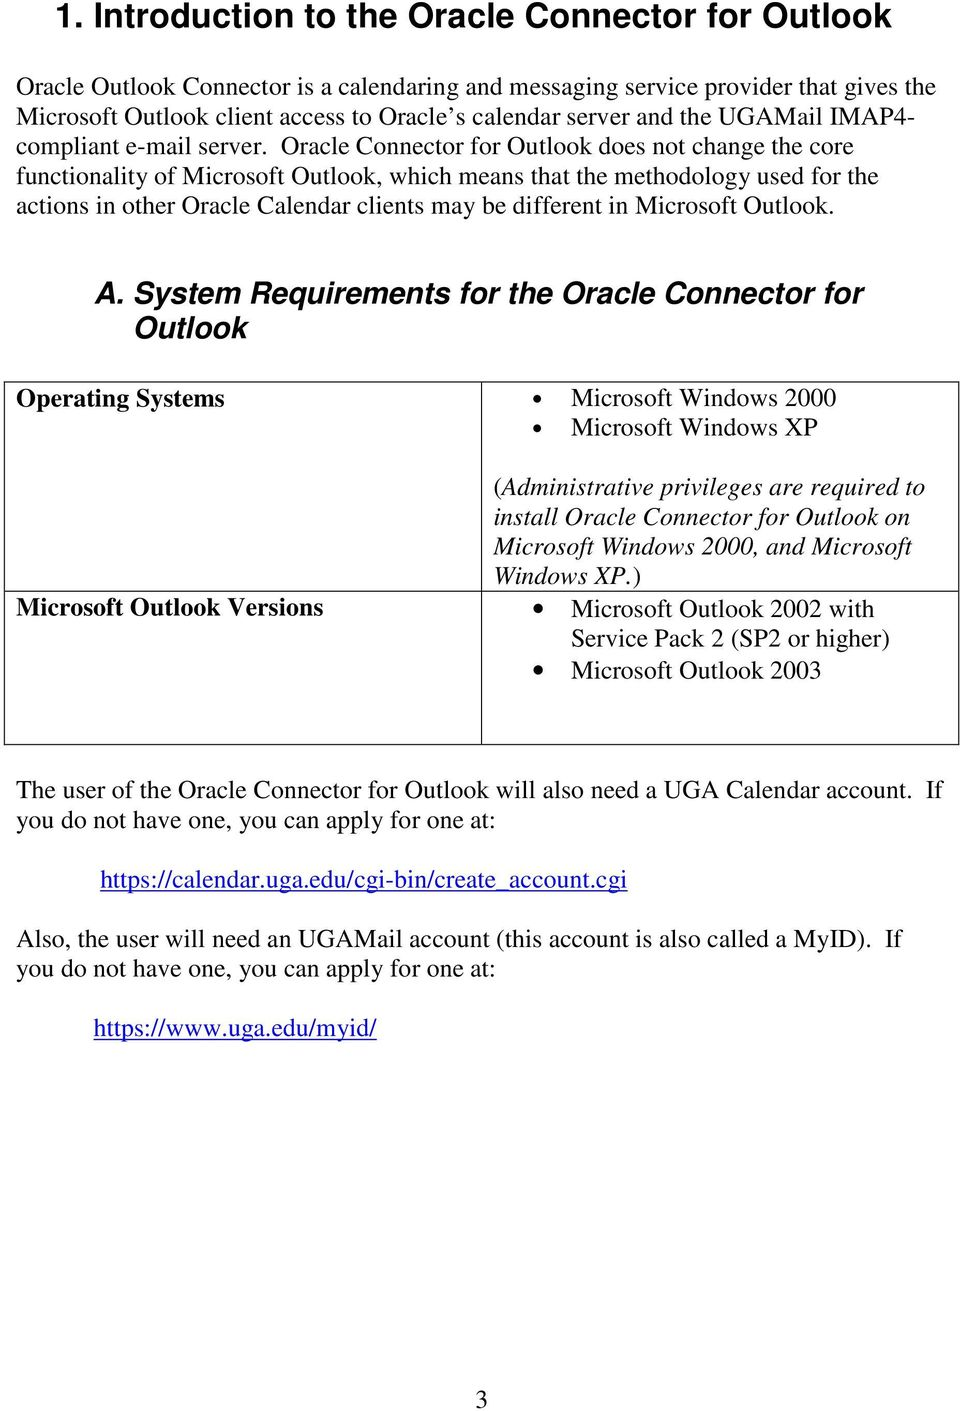 Oracle Connector for Outlook does not change the core functionality of Microsoft Outlook, which means that the methodology used for the actions in other Oracle Calendar clients may be different in